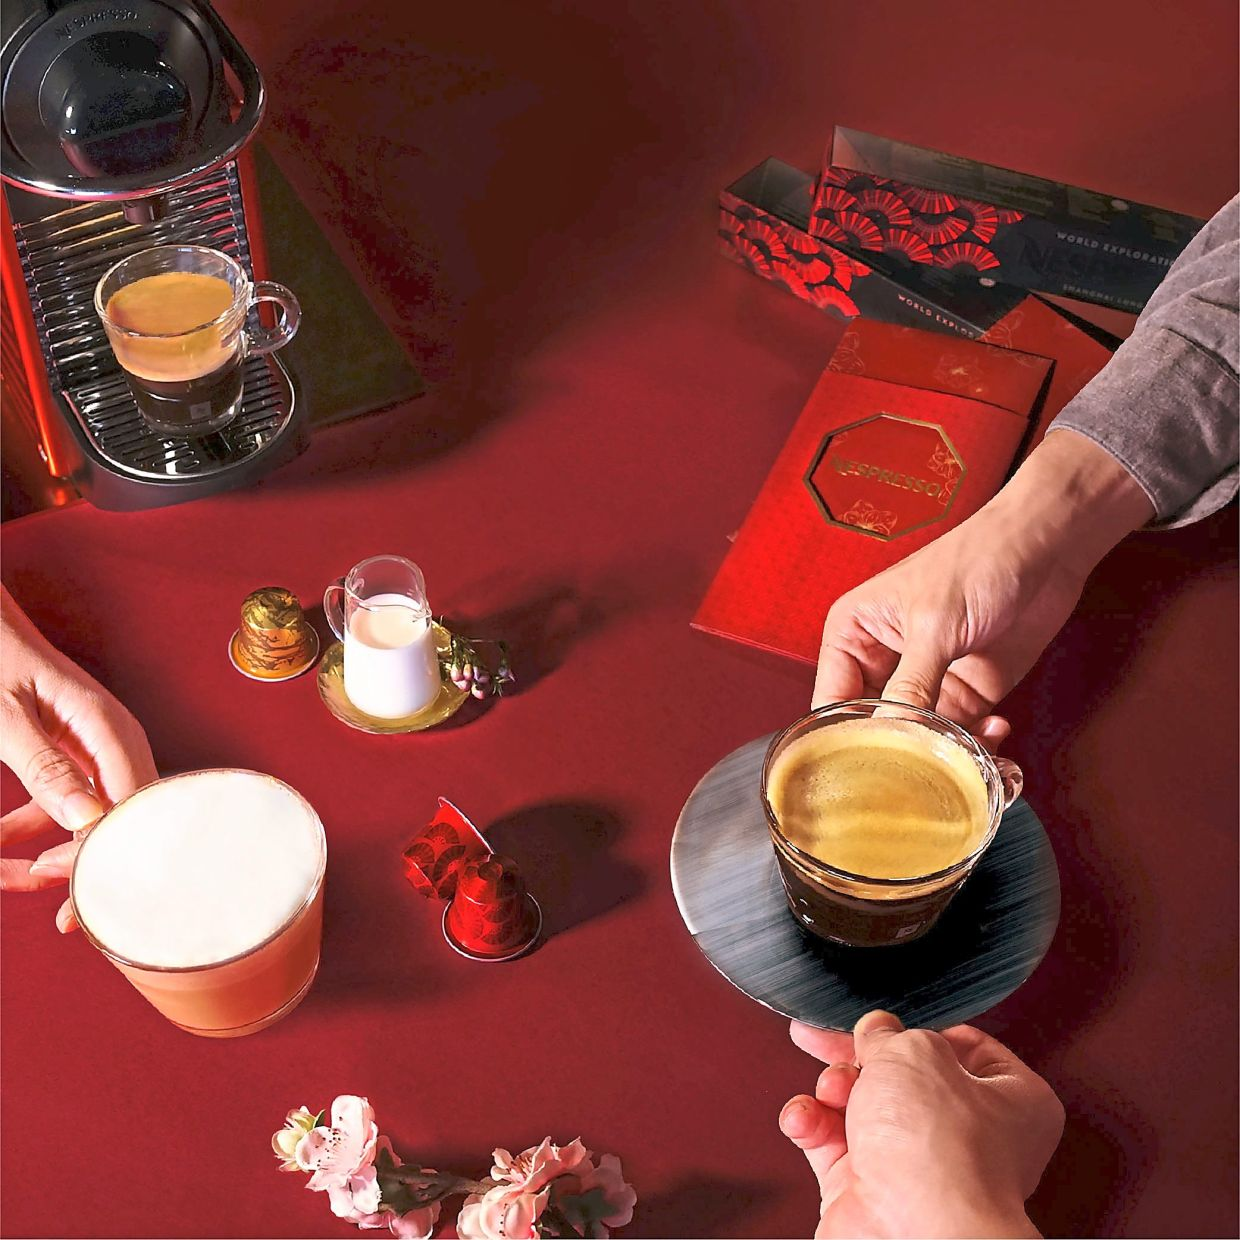 Nespresso's Shanghai Lungo is a distinctive light-roast blend that will please the palate with its berry notes.